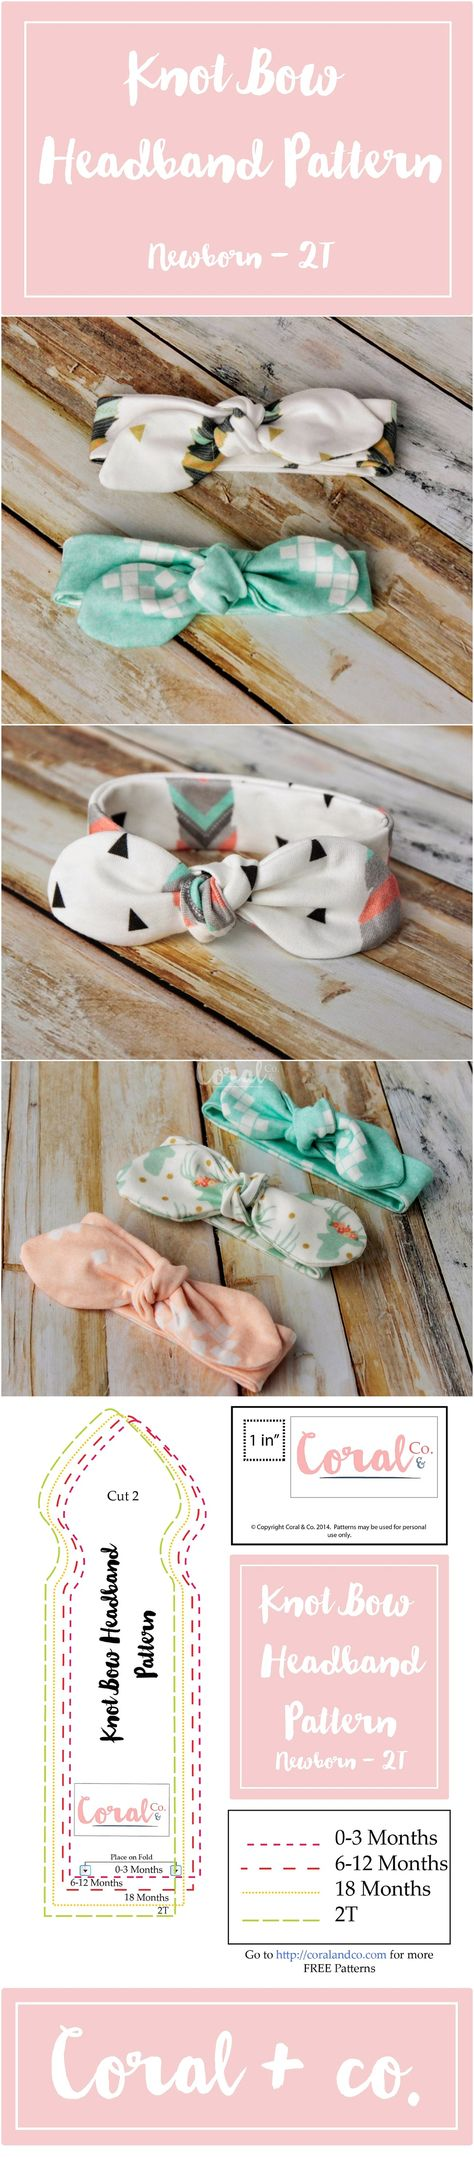 FREE Knotted Headband Pattern and Tutorial. Easy DIY Knit Knot Bow Headband Pattern comes in sizes Newborn - 2T. Check out more free patterns from Coral and Co.